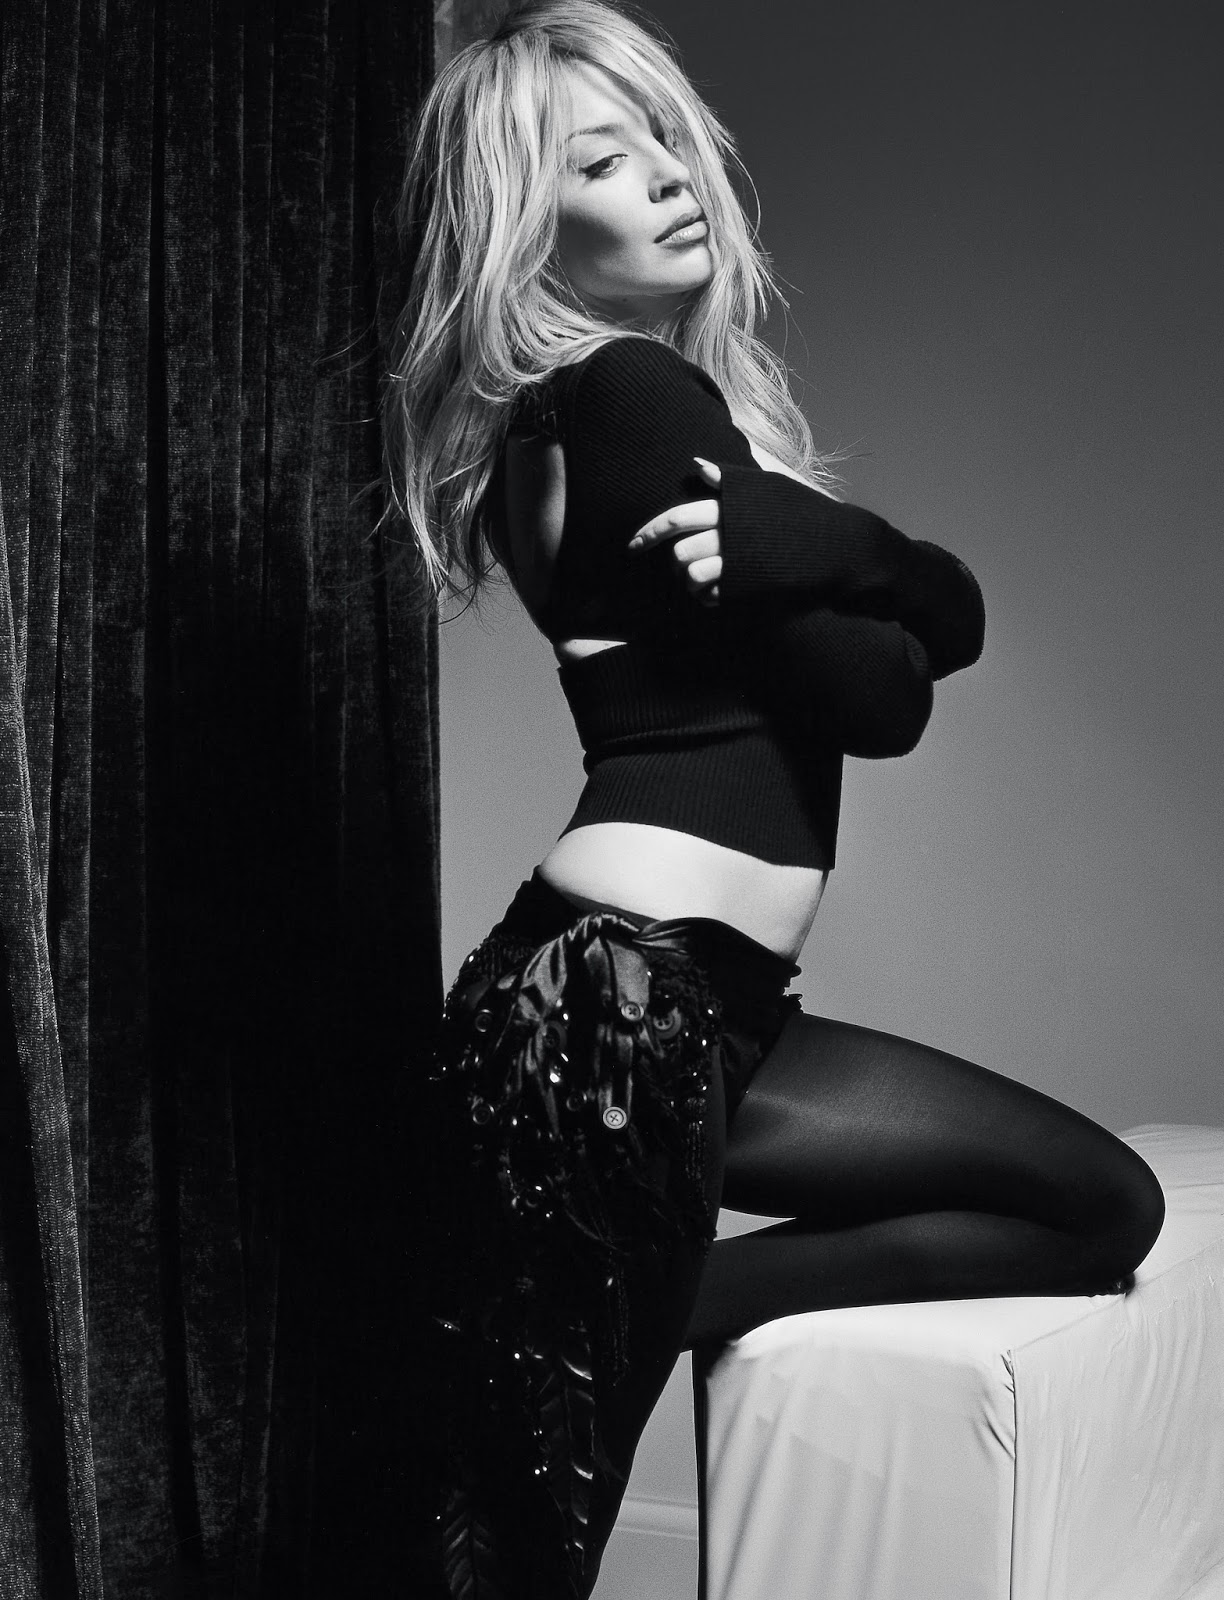 minogue-black-and-white-wall